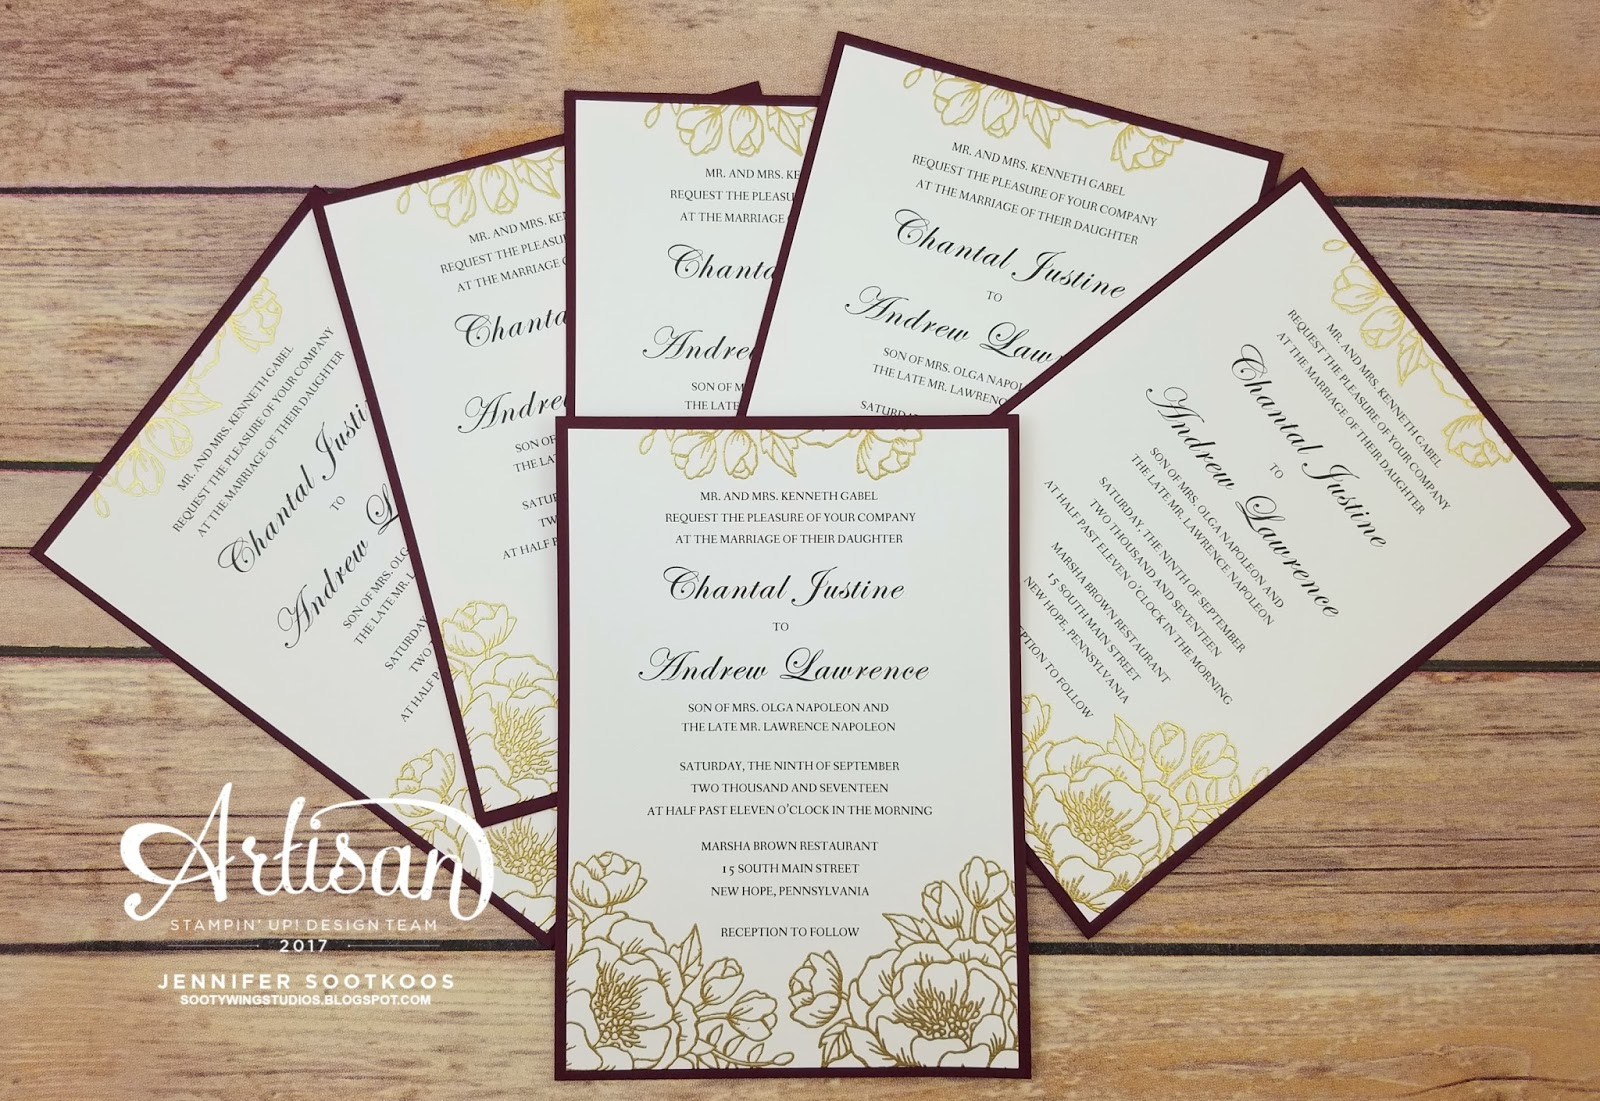 Sootywing Studios: Wedding Invitations